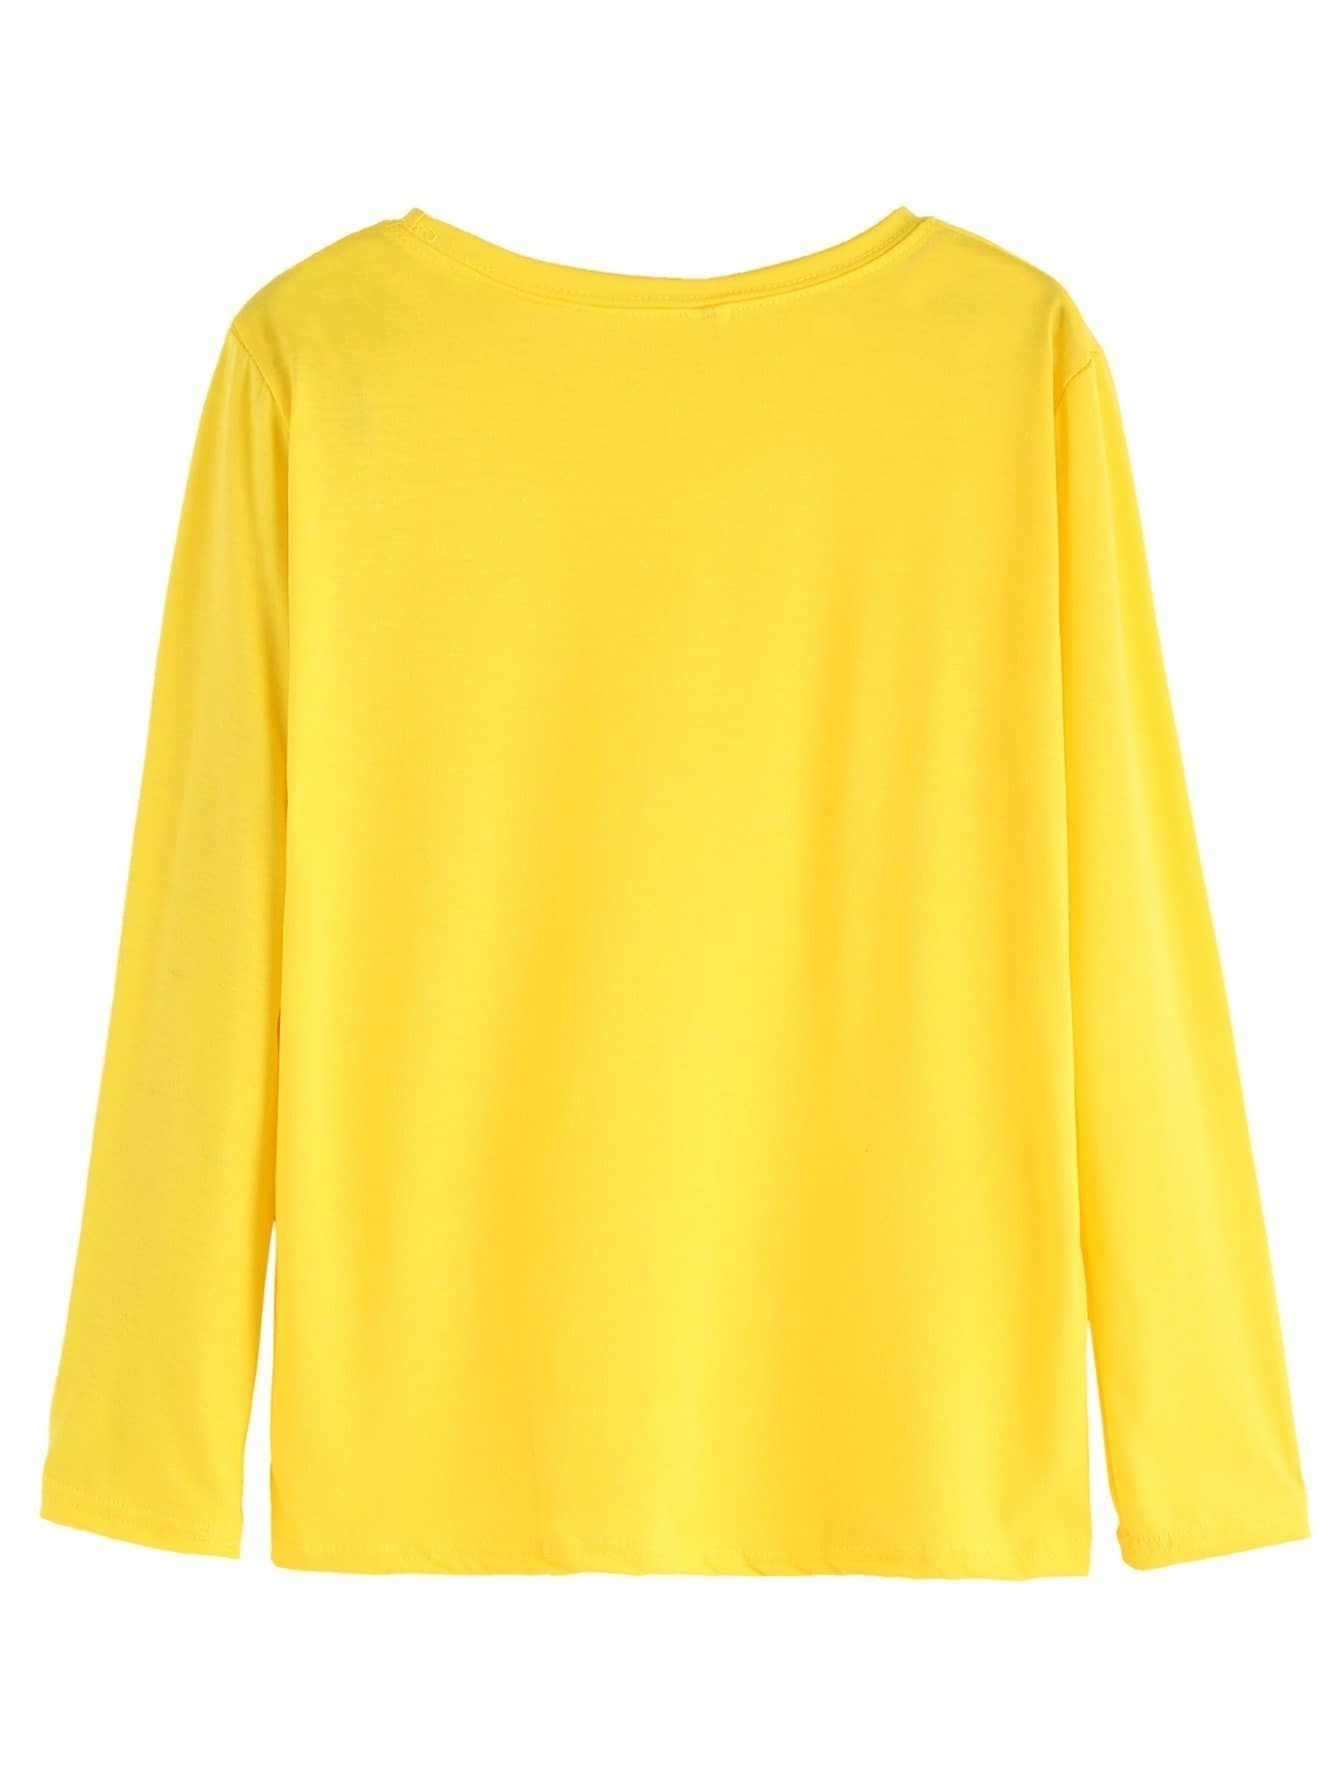 Yellow ripped long sleeve t shirt for Yellow long sleeved t shirt